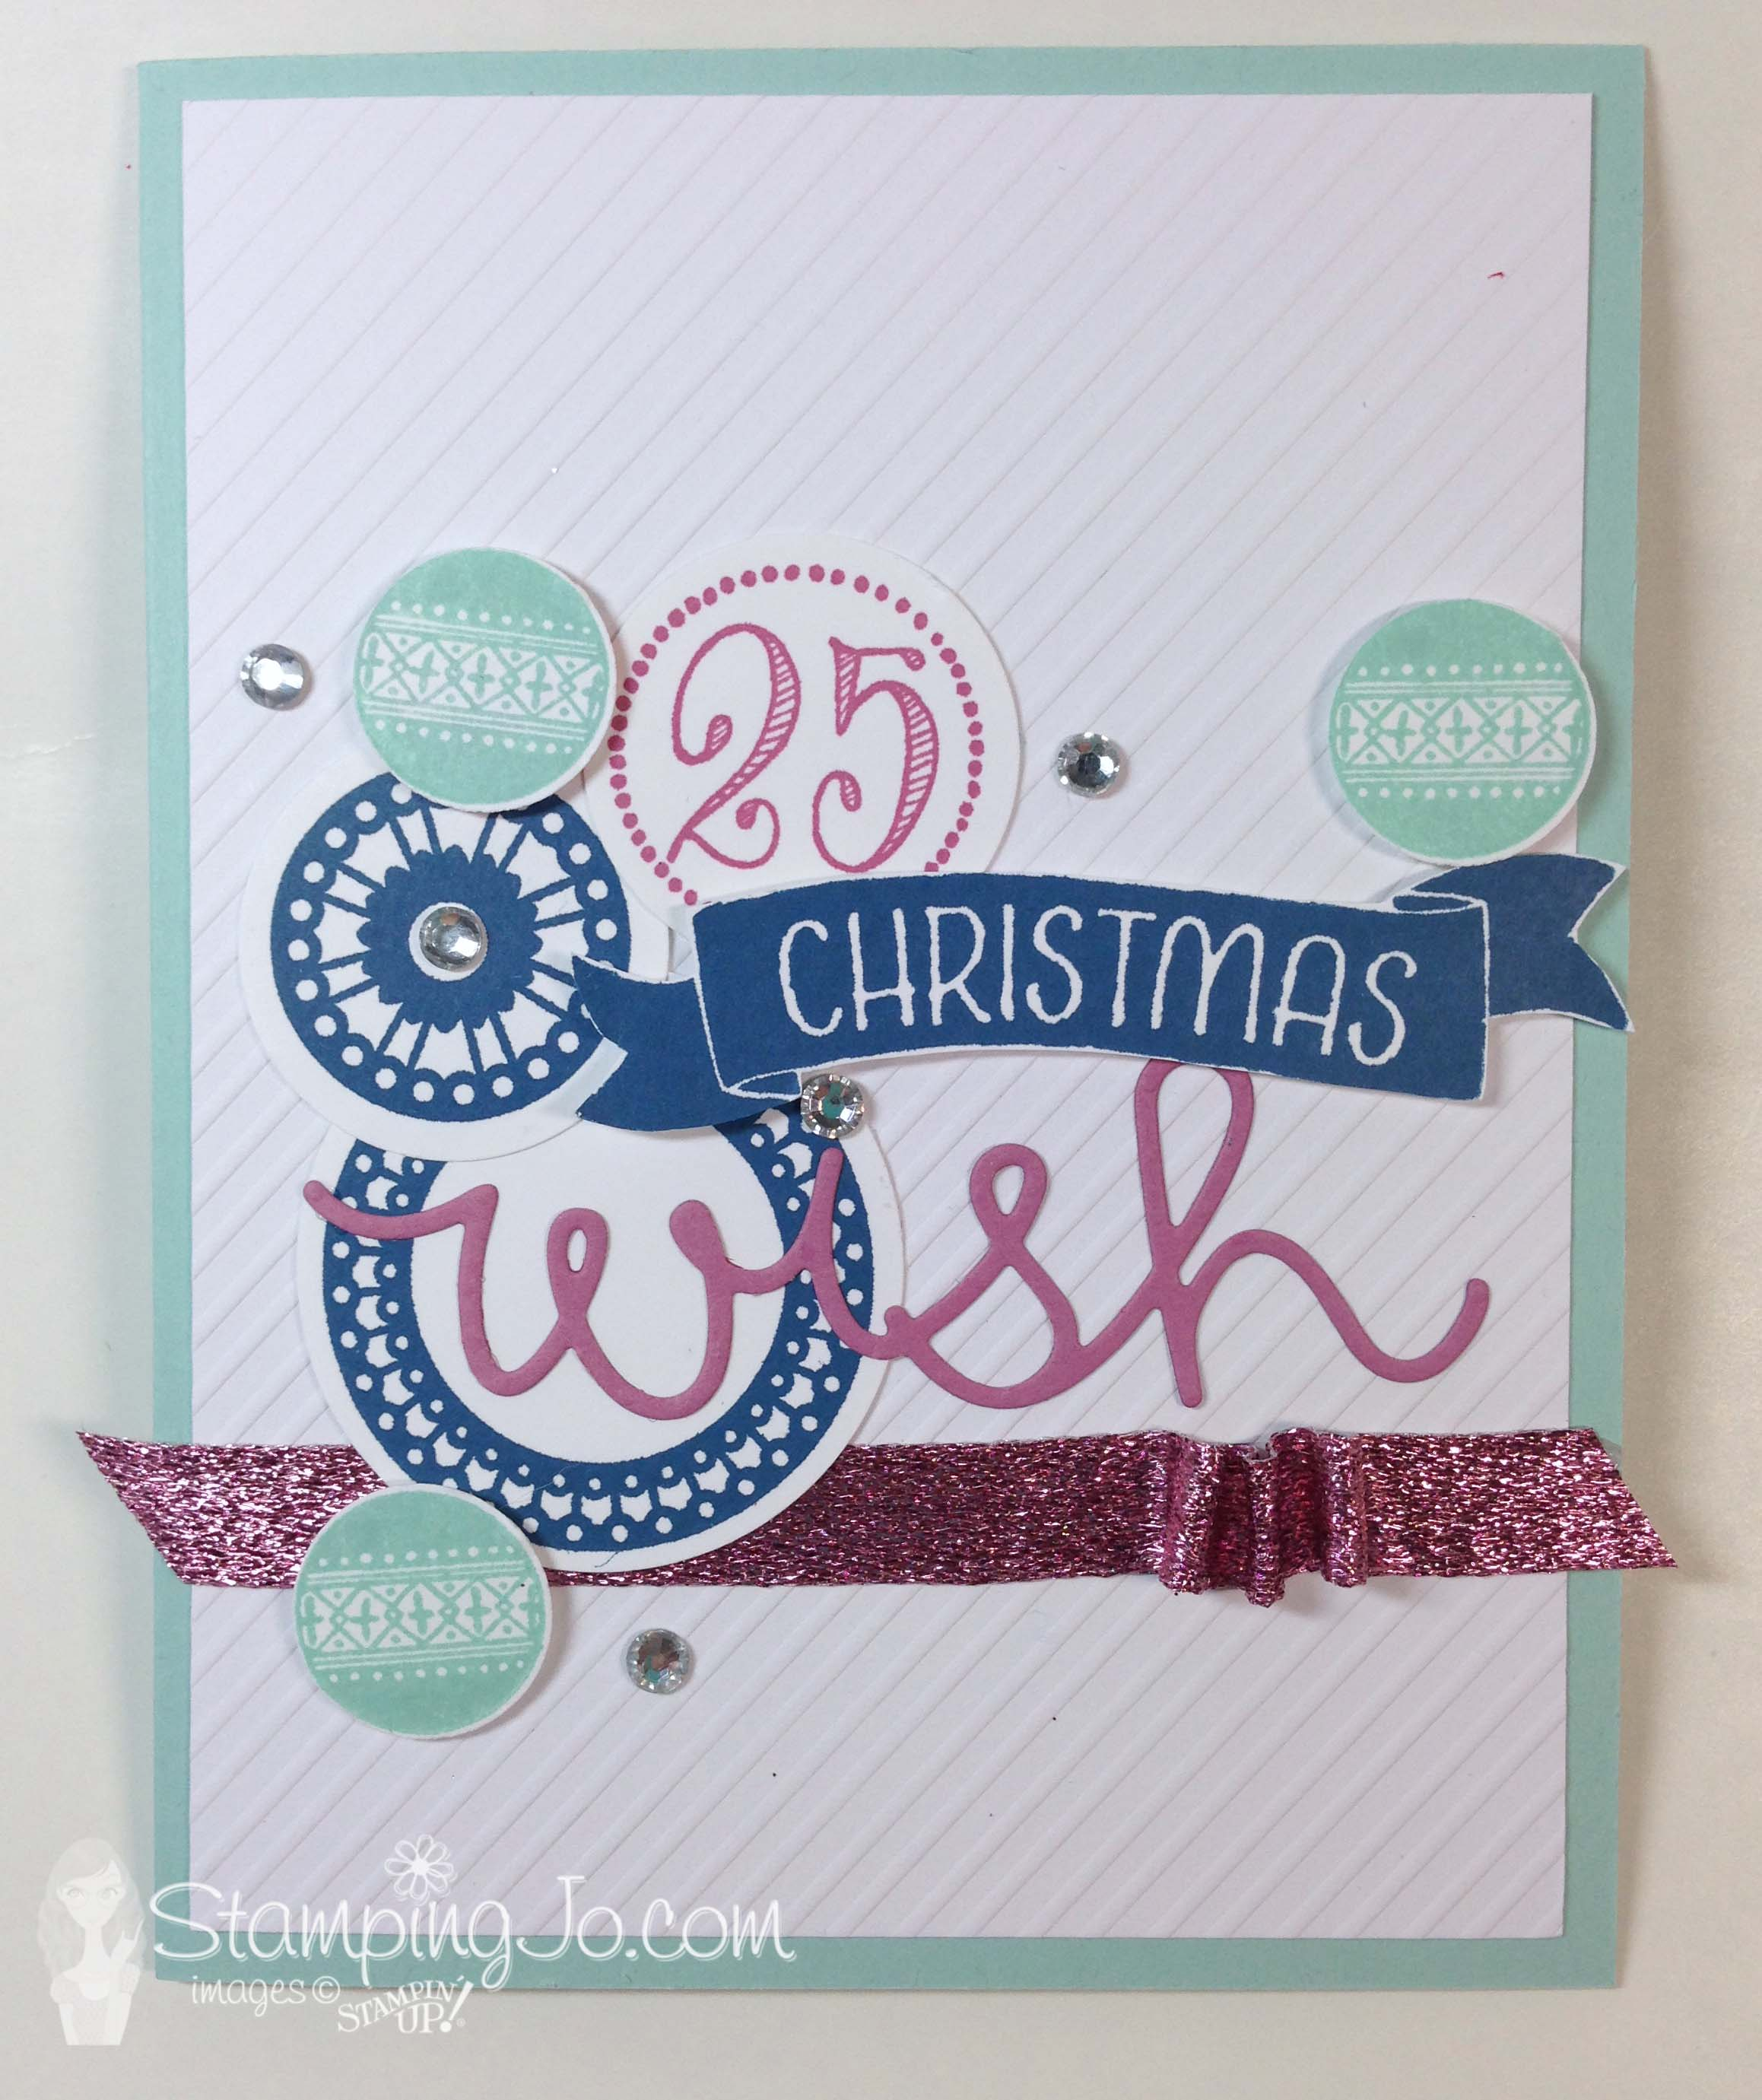 Merriest Wishes stamp set, Cupcake Cutouts Framelits, Stampin Up, by StampingJo